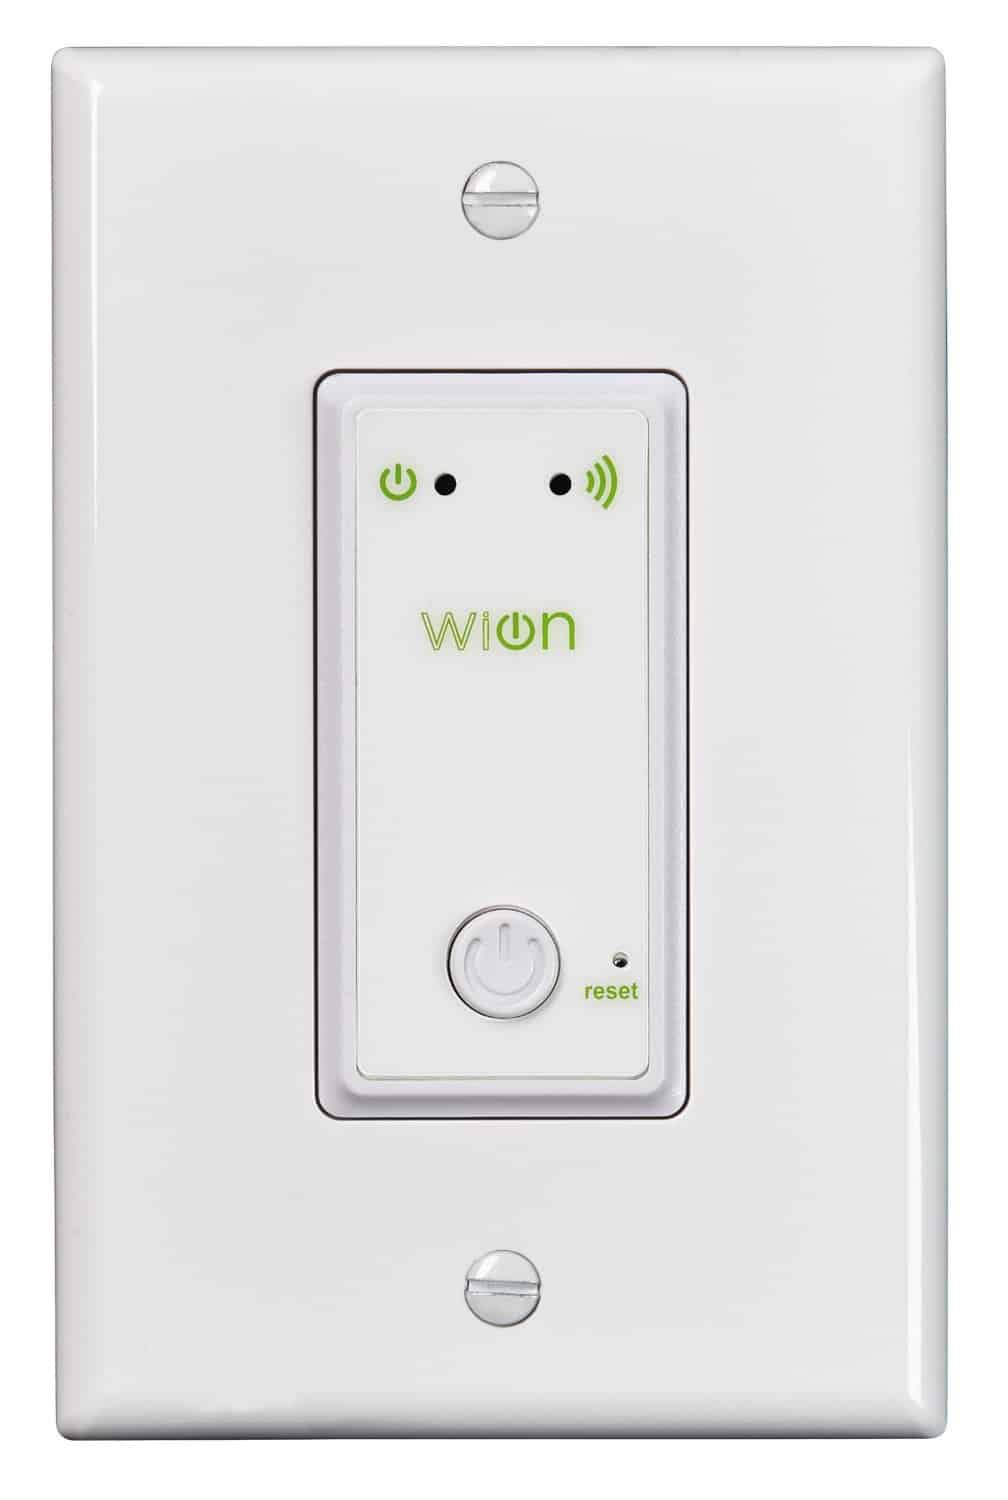 Wion 50052 indoor wi fi in wall light switch reviews and deals wion 50052 indoor wi fi in wall light switch 1 aloadofball Choice Image